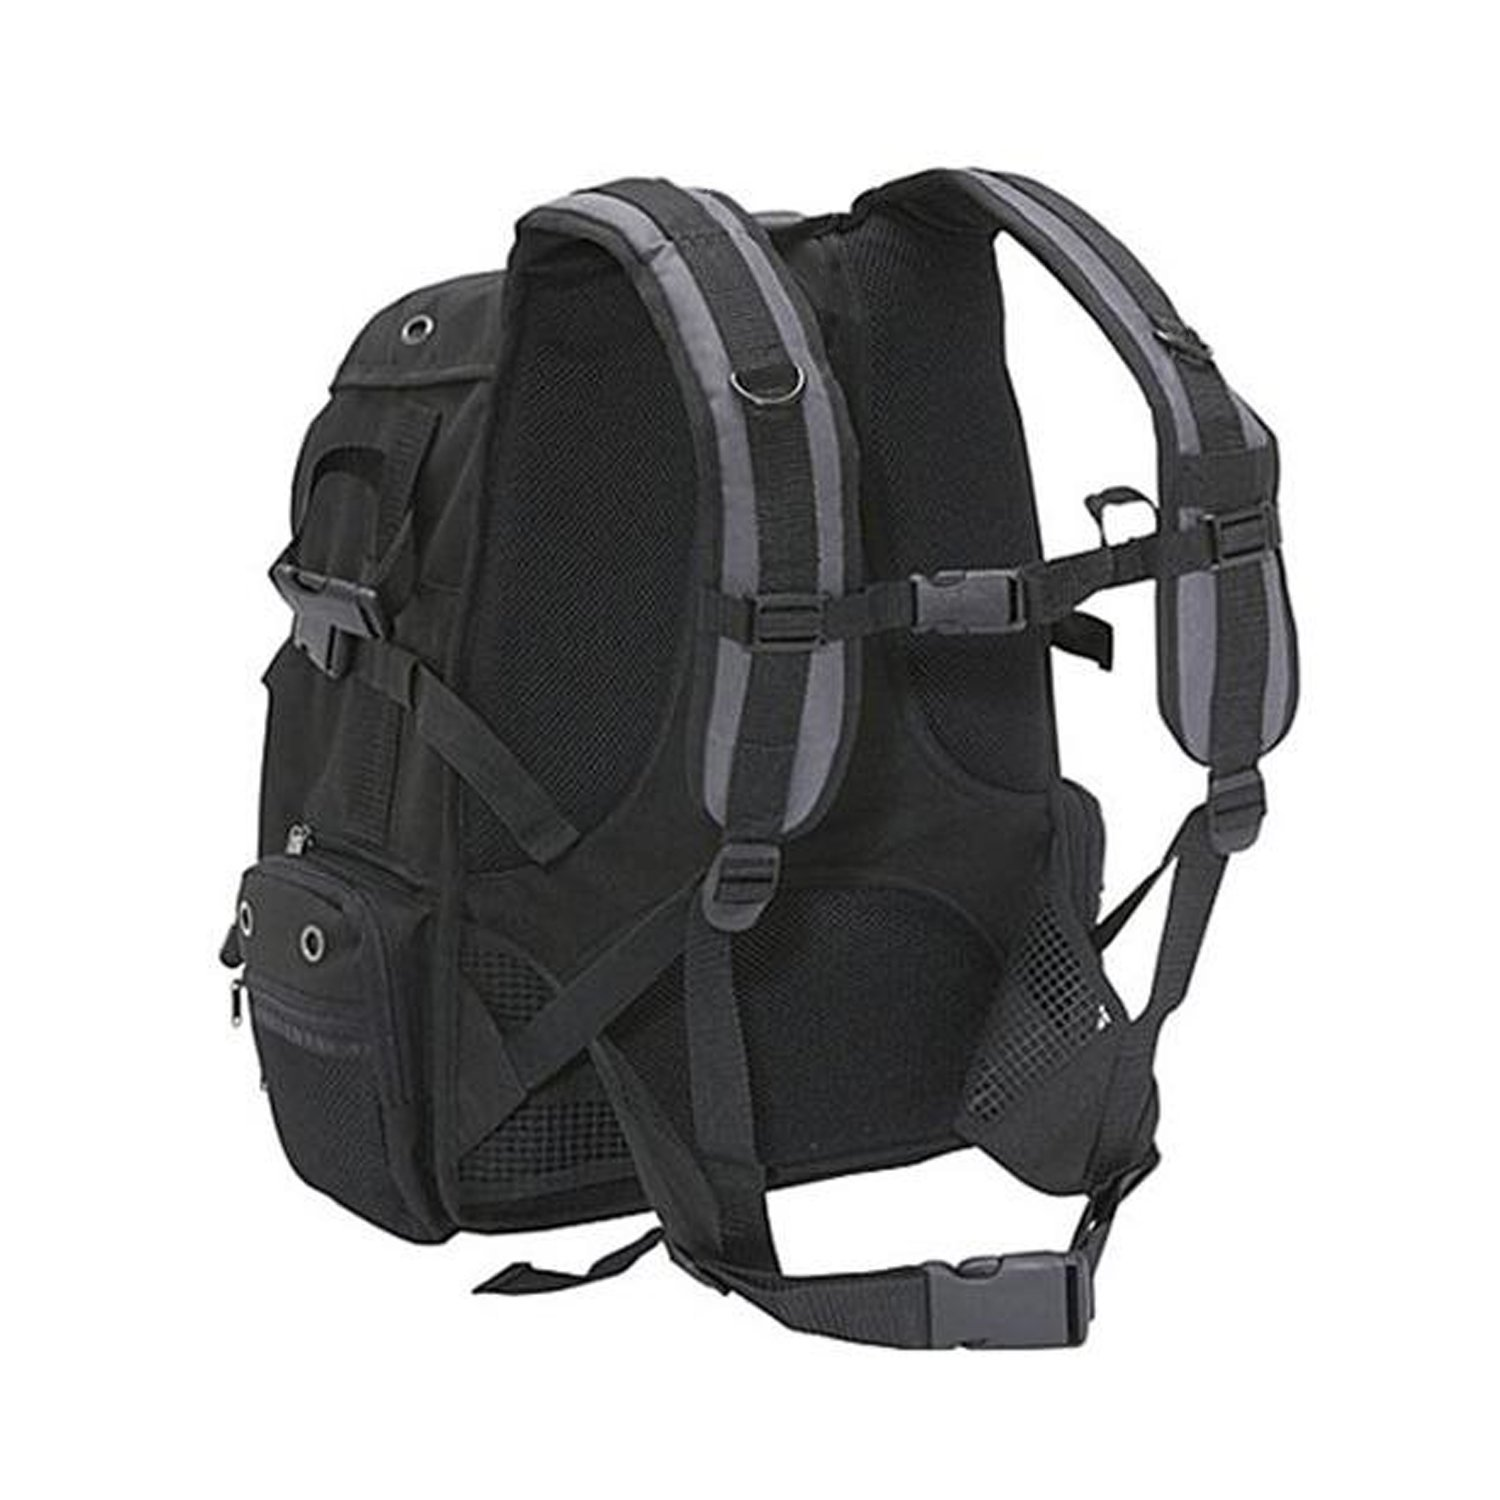 Ape Case, ACPRO2000, Large backpack, Laptop compartment, Padded, Rain cover included, Adjustable straps, Camera Backpack, Equipment bag, Black (ACPRO2000) by Ape Case (Image #4)